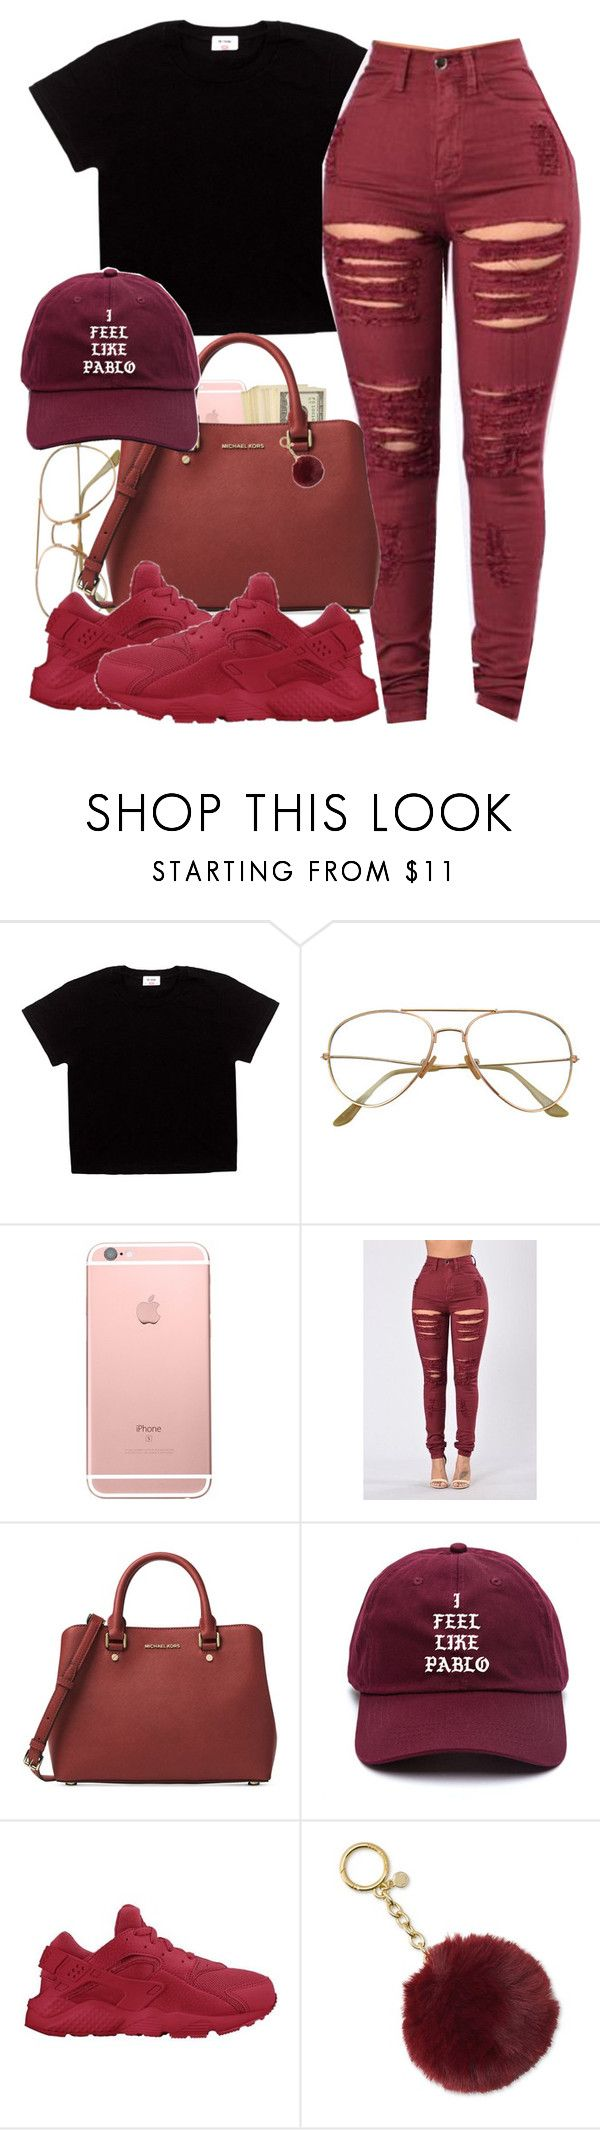 """Untitled #594"" by ramenmatty ❤ liked on Polyvore featuring Michael Kors, adidas and NIKE"